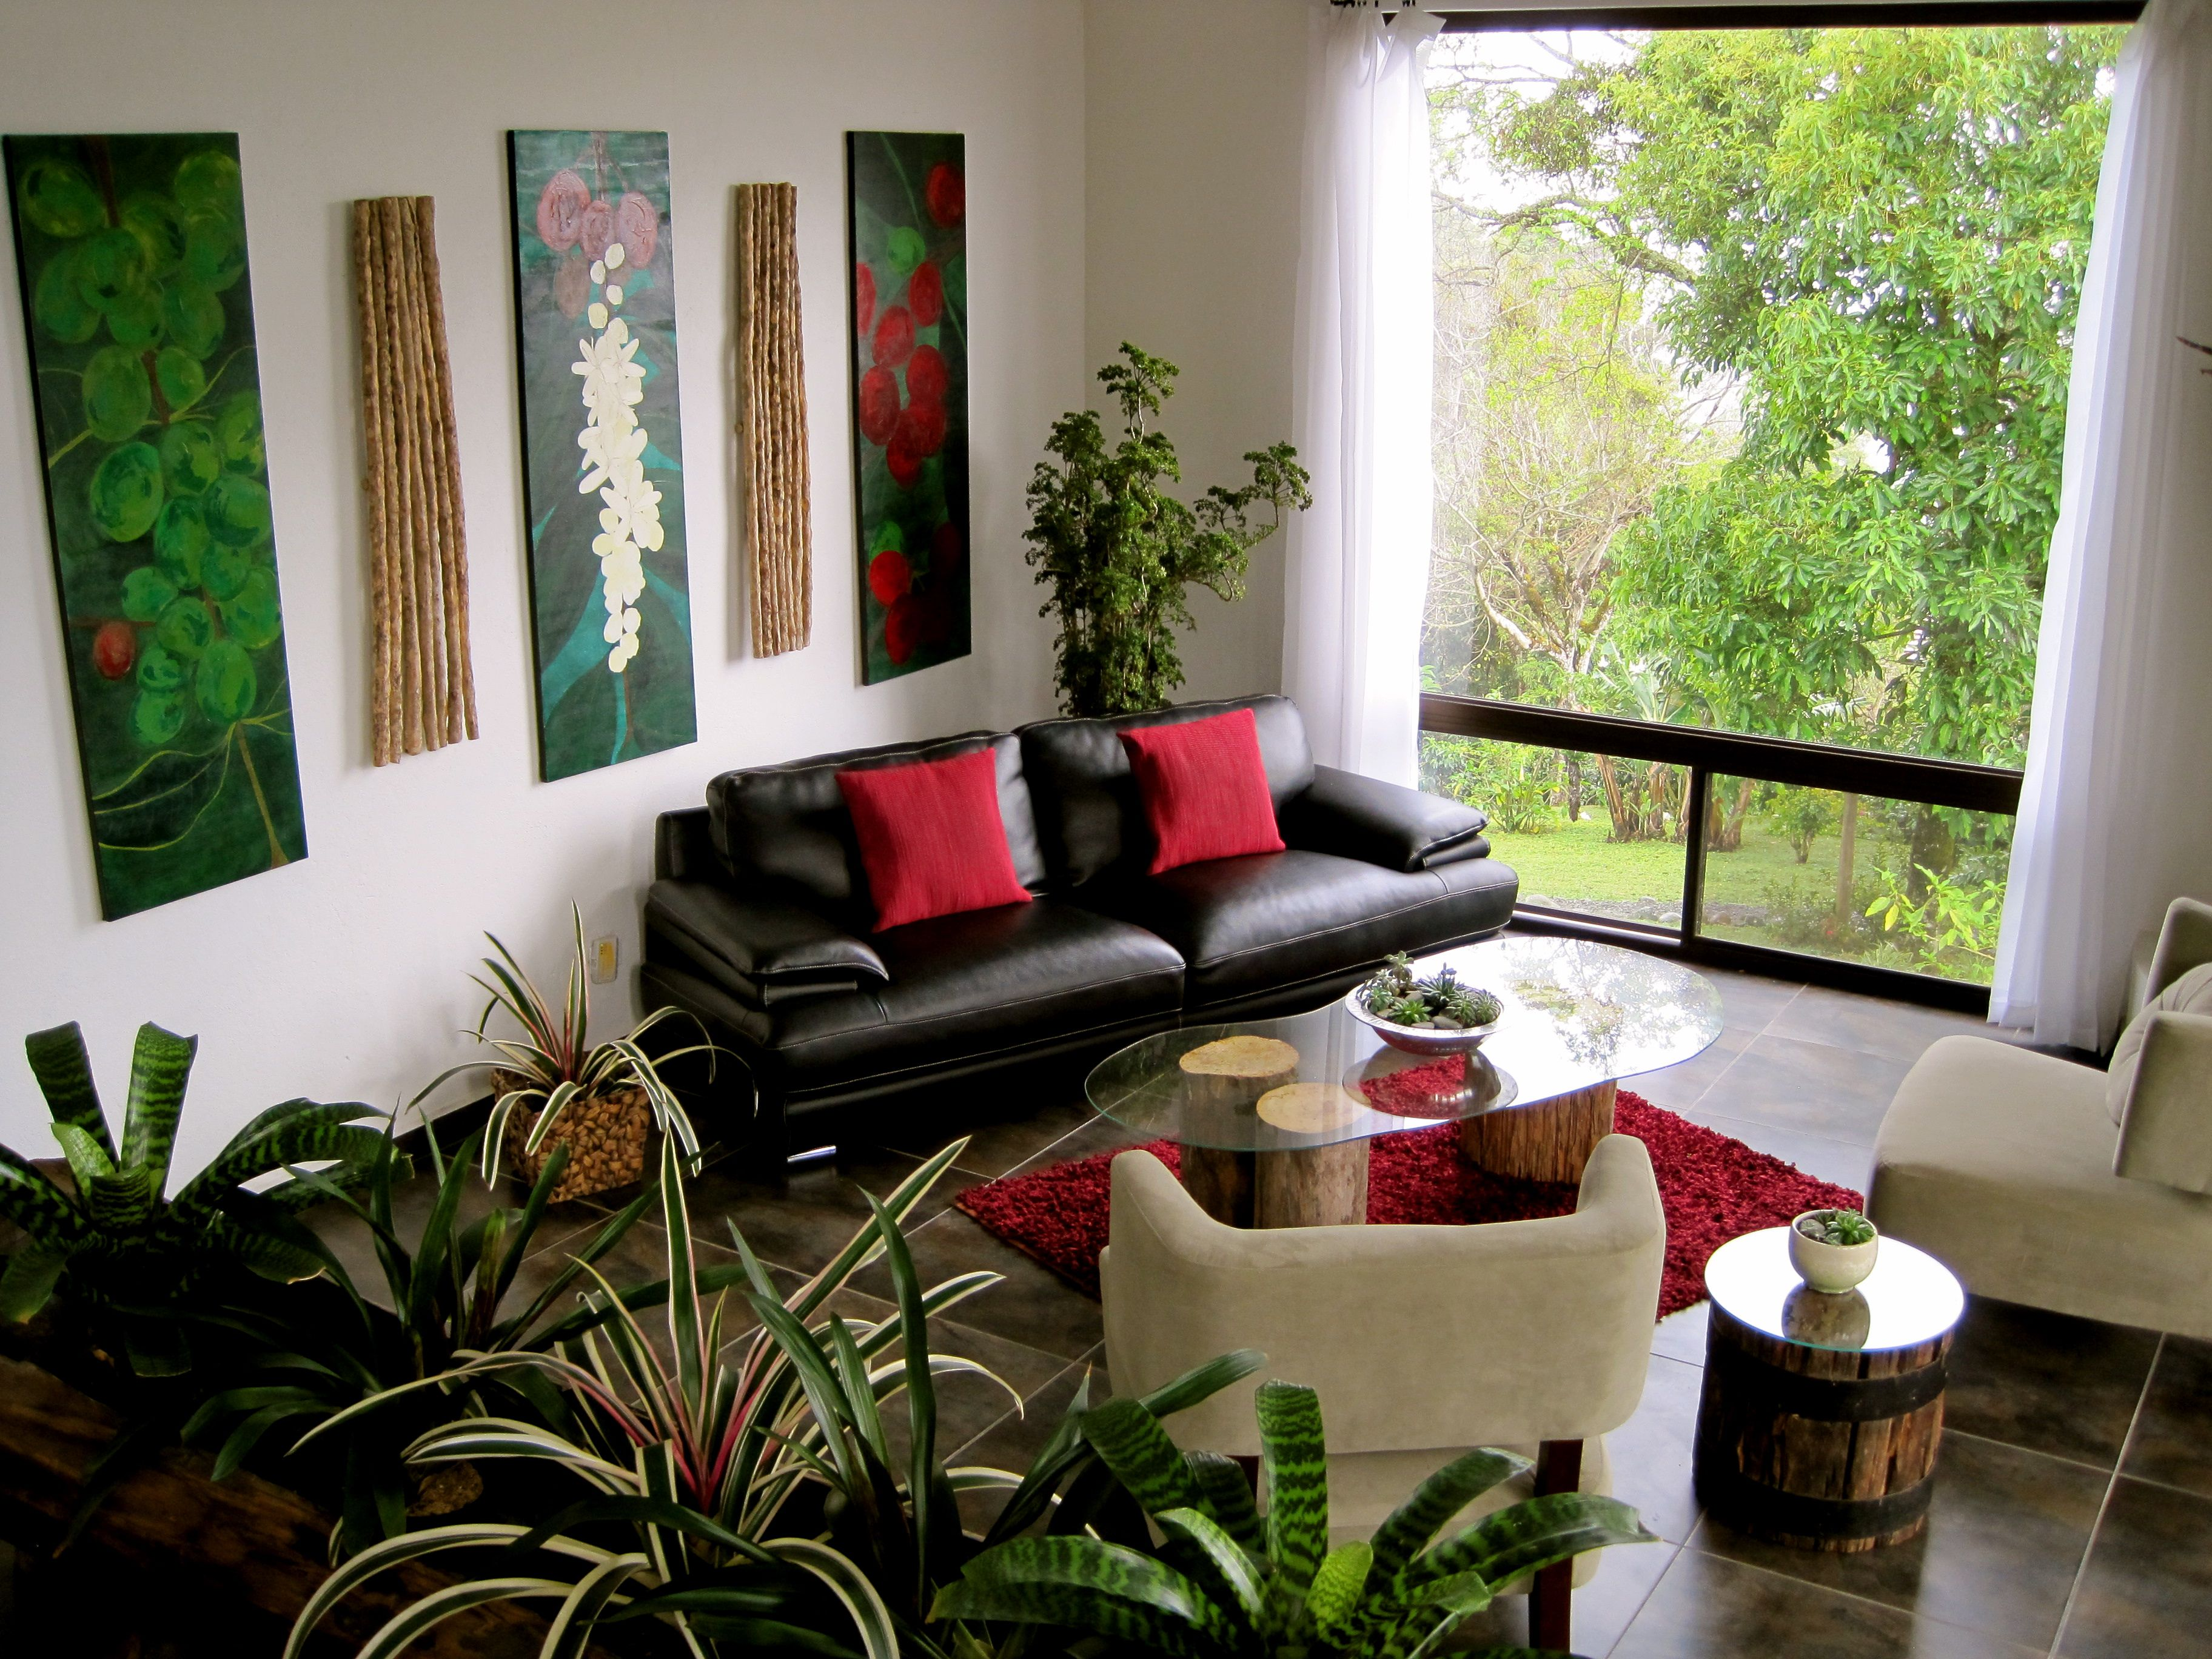 Indoor Decorating Ideas eight common indoor plant myths | plants, living room decorating